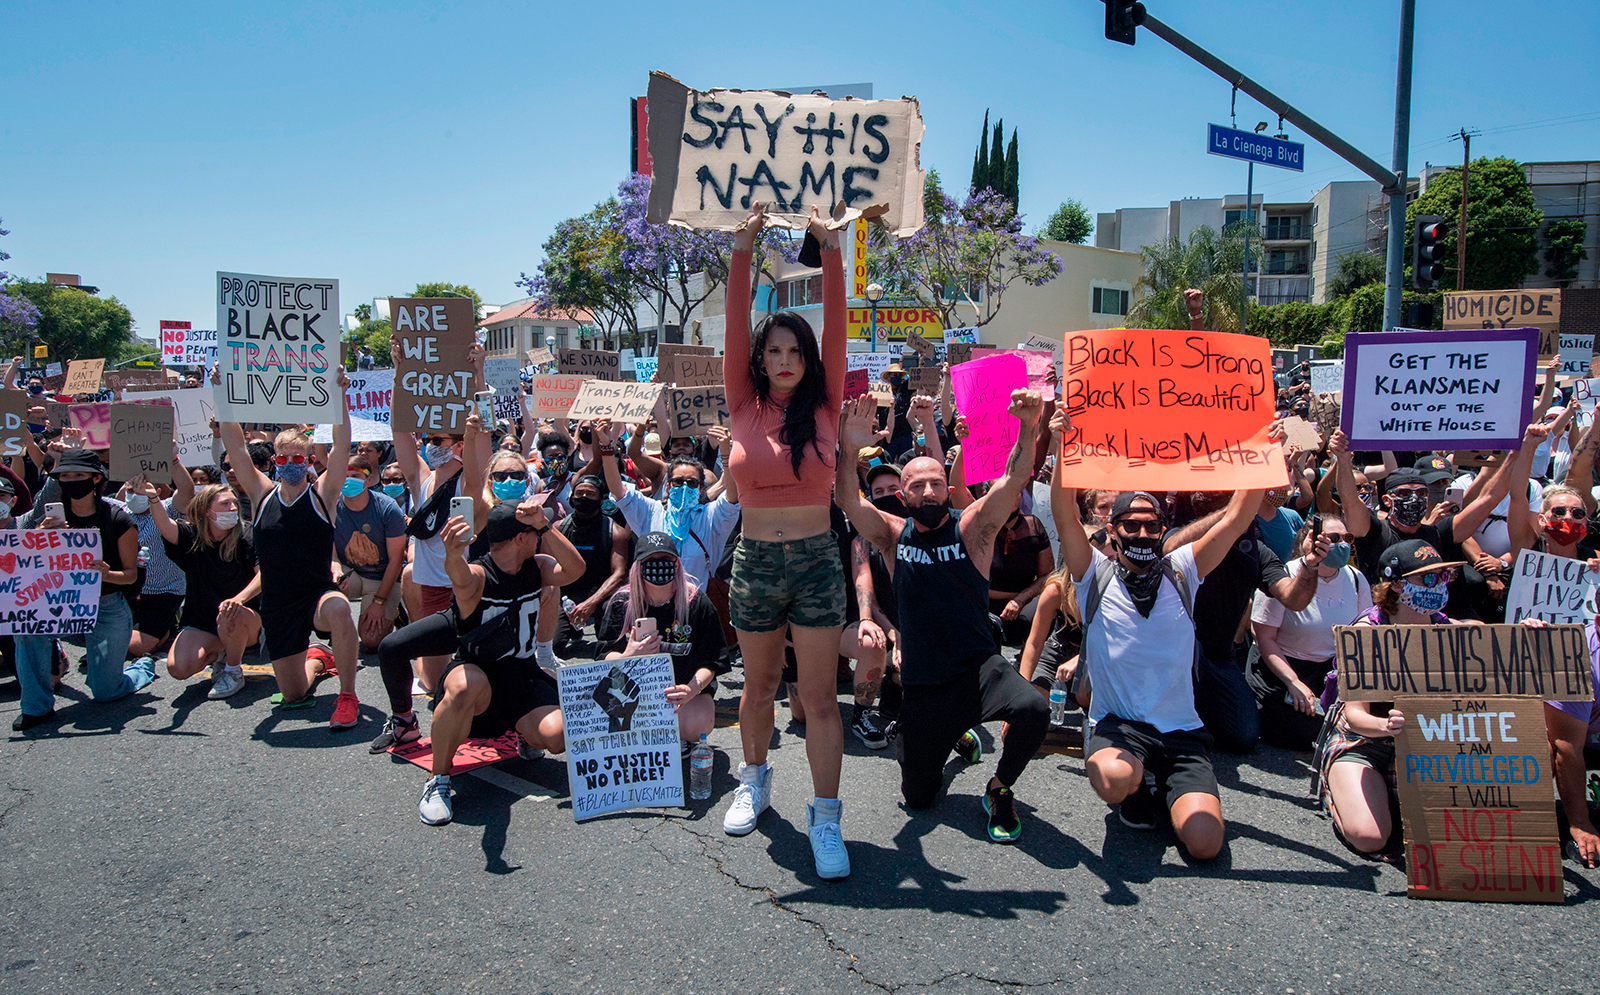 Demonstrators march as they protest the death of George Floyd, in West Hollywood, California on June 3.